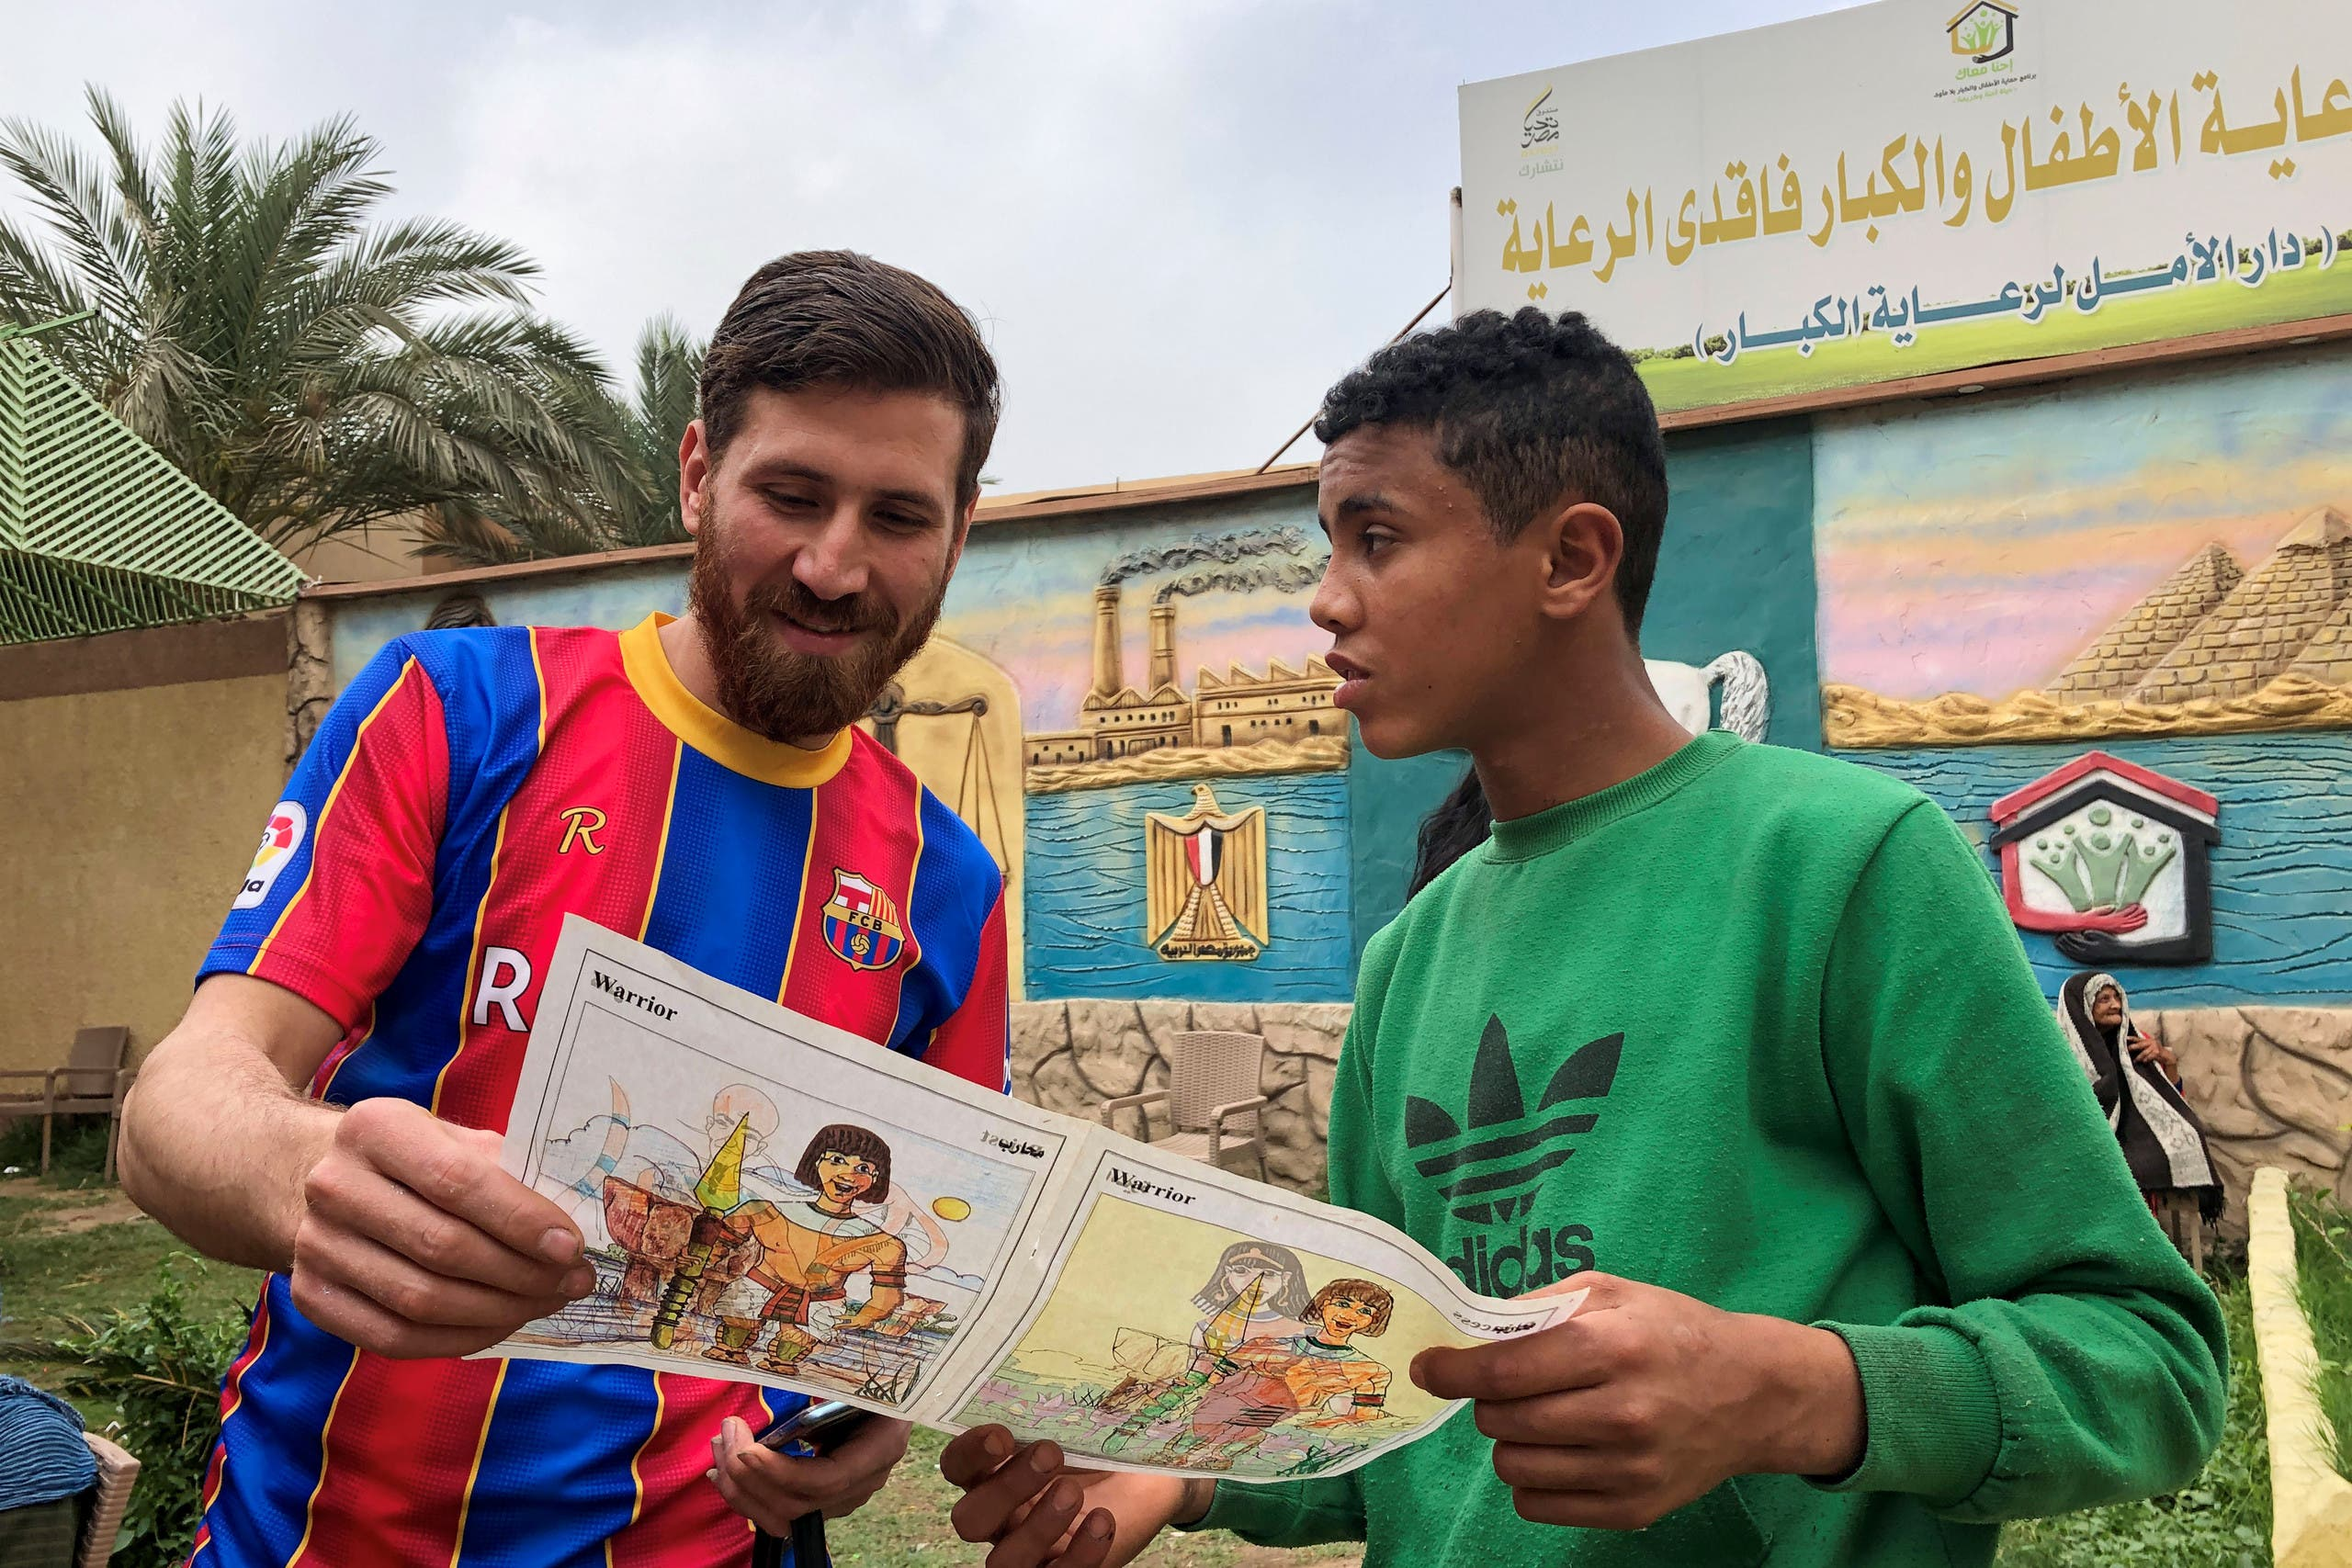 Islam Mohammed Ibrahim Battah, an Egyptian with a striking resemblance to BarcelonaÕs forward Lionel Messi, is seen with a youth in a club training facility, in the Nile Delta city of Zagazig, north of Cairo, Egypt March 23, 2021. (Reuters)